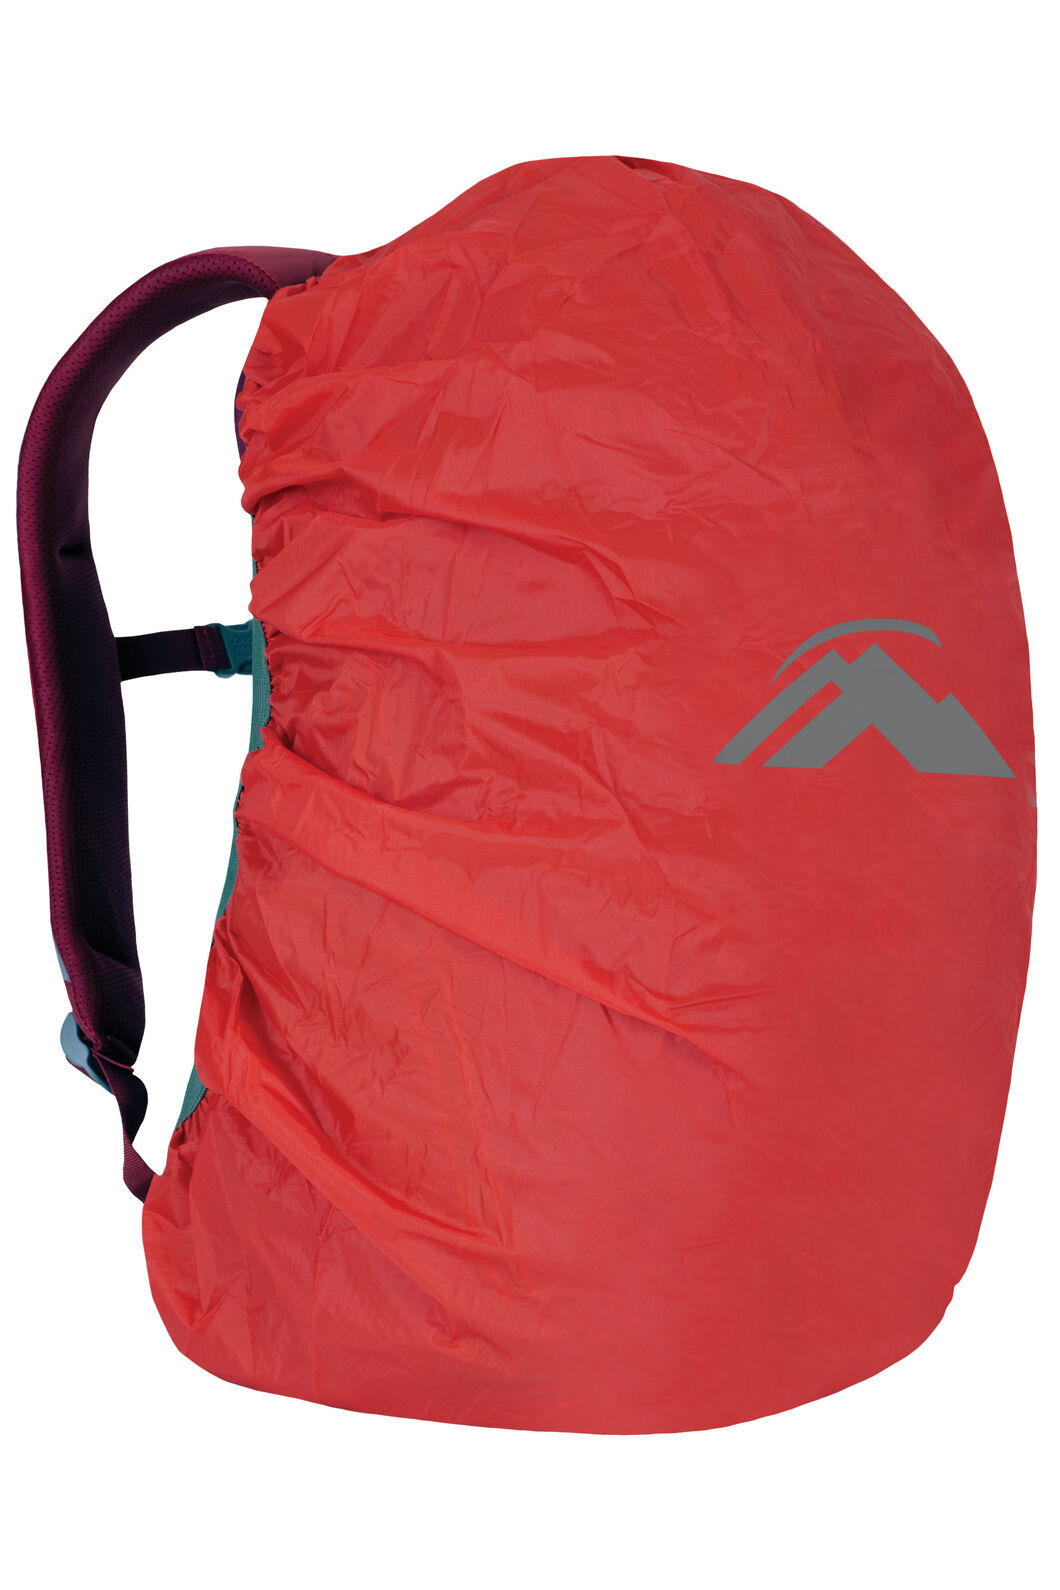 Macpac Pack Raincover Small, Indicator, hi-res